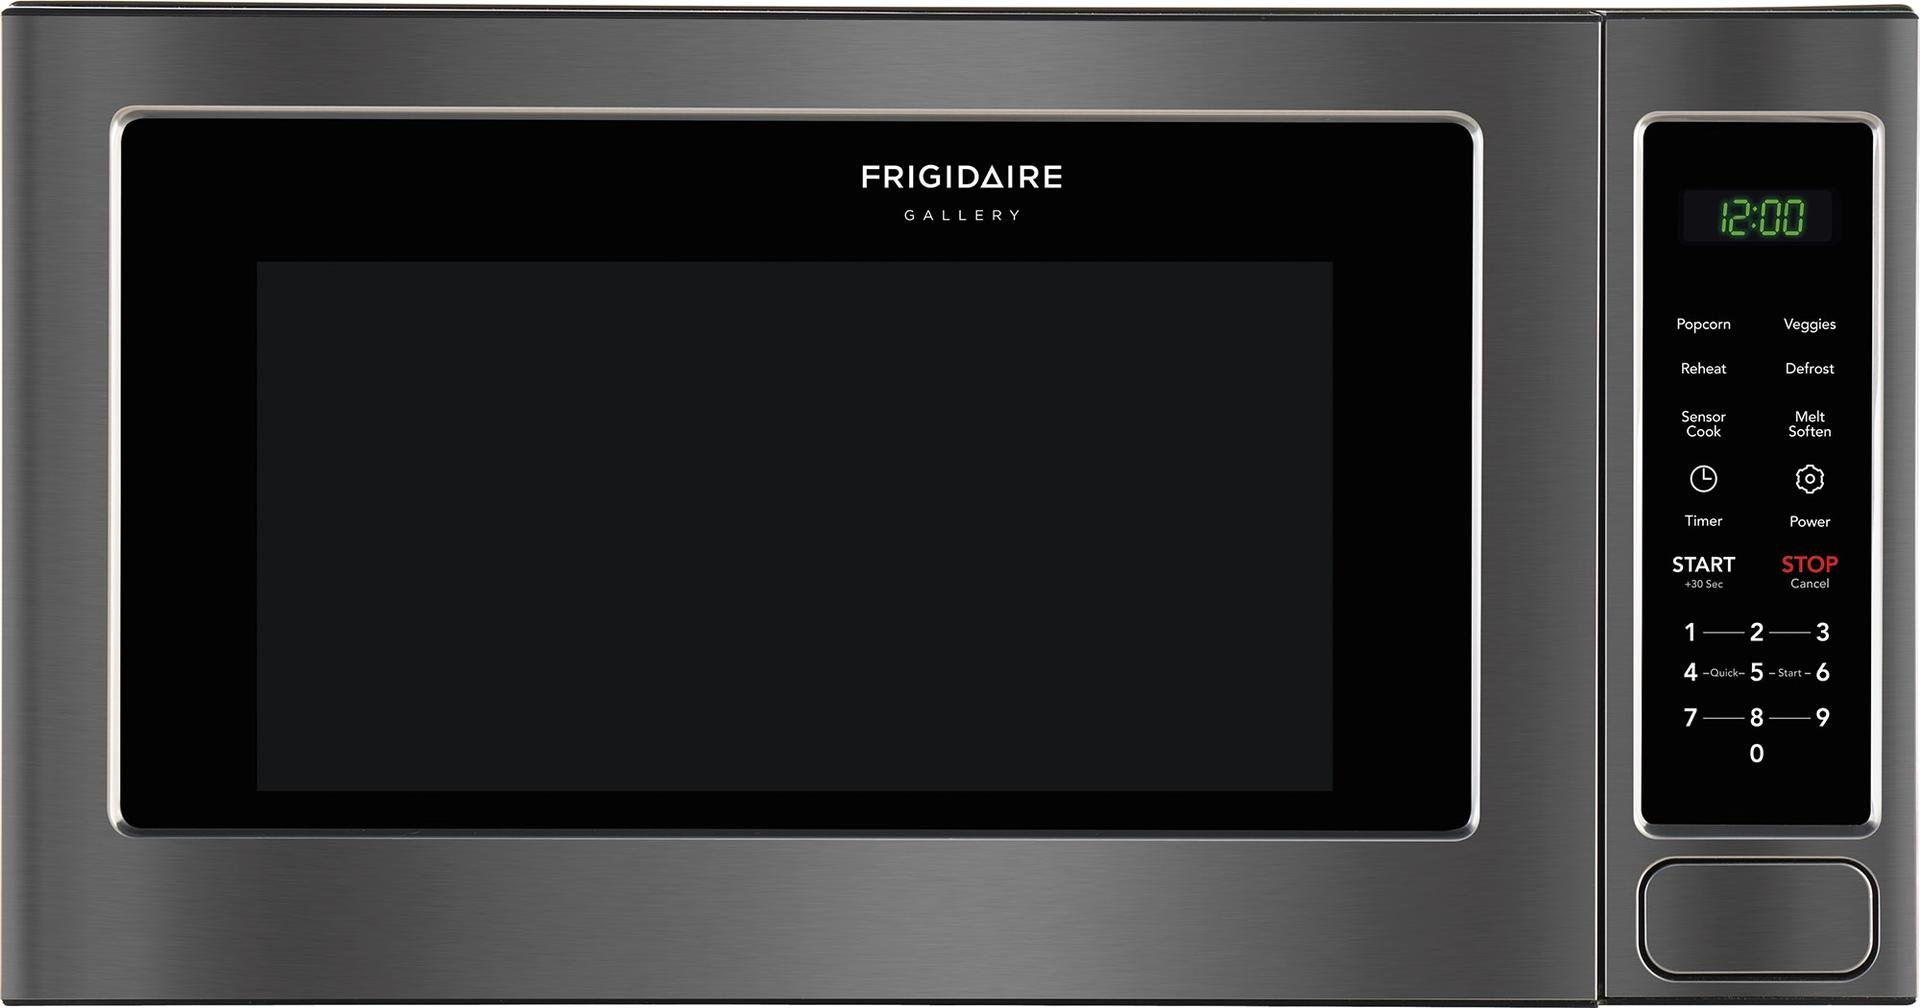 Frigidaire FGMO206NTD Gallery Series 2 cu. ft. Capacity Countertop Microwave with 1200 Cooking Watts in Black Stainless Steel